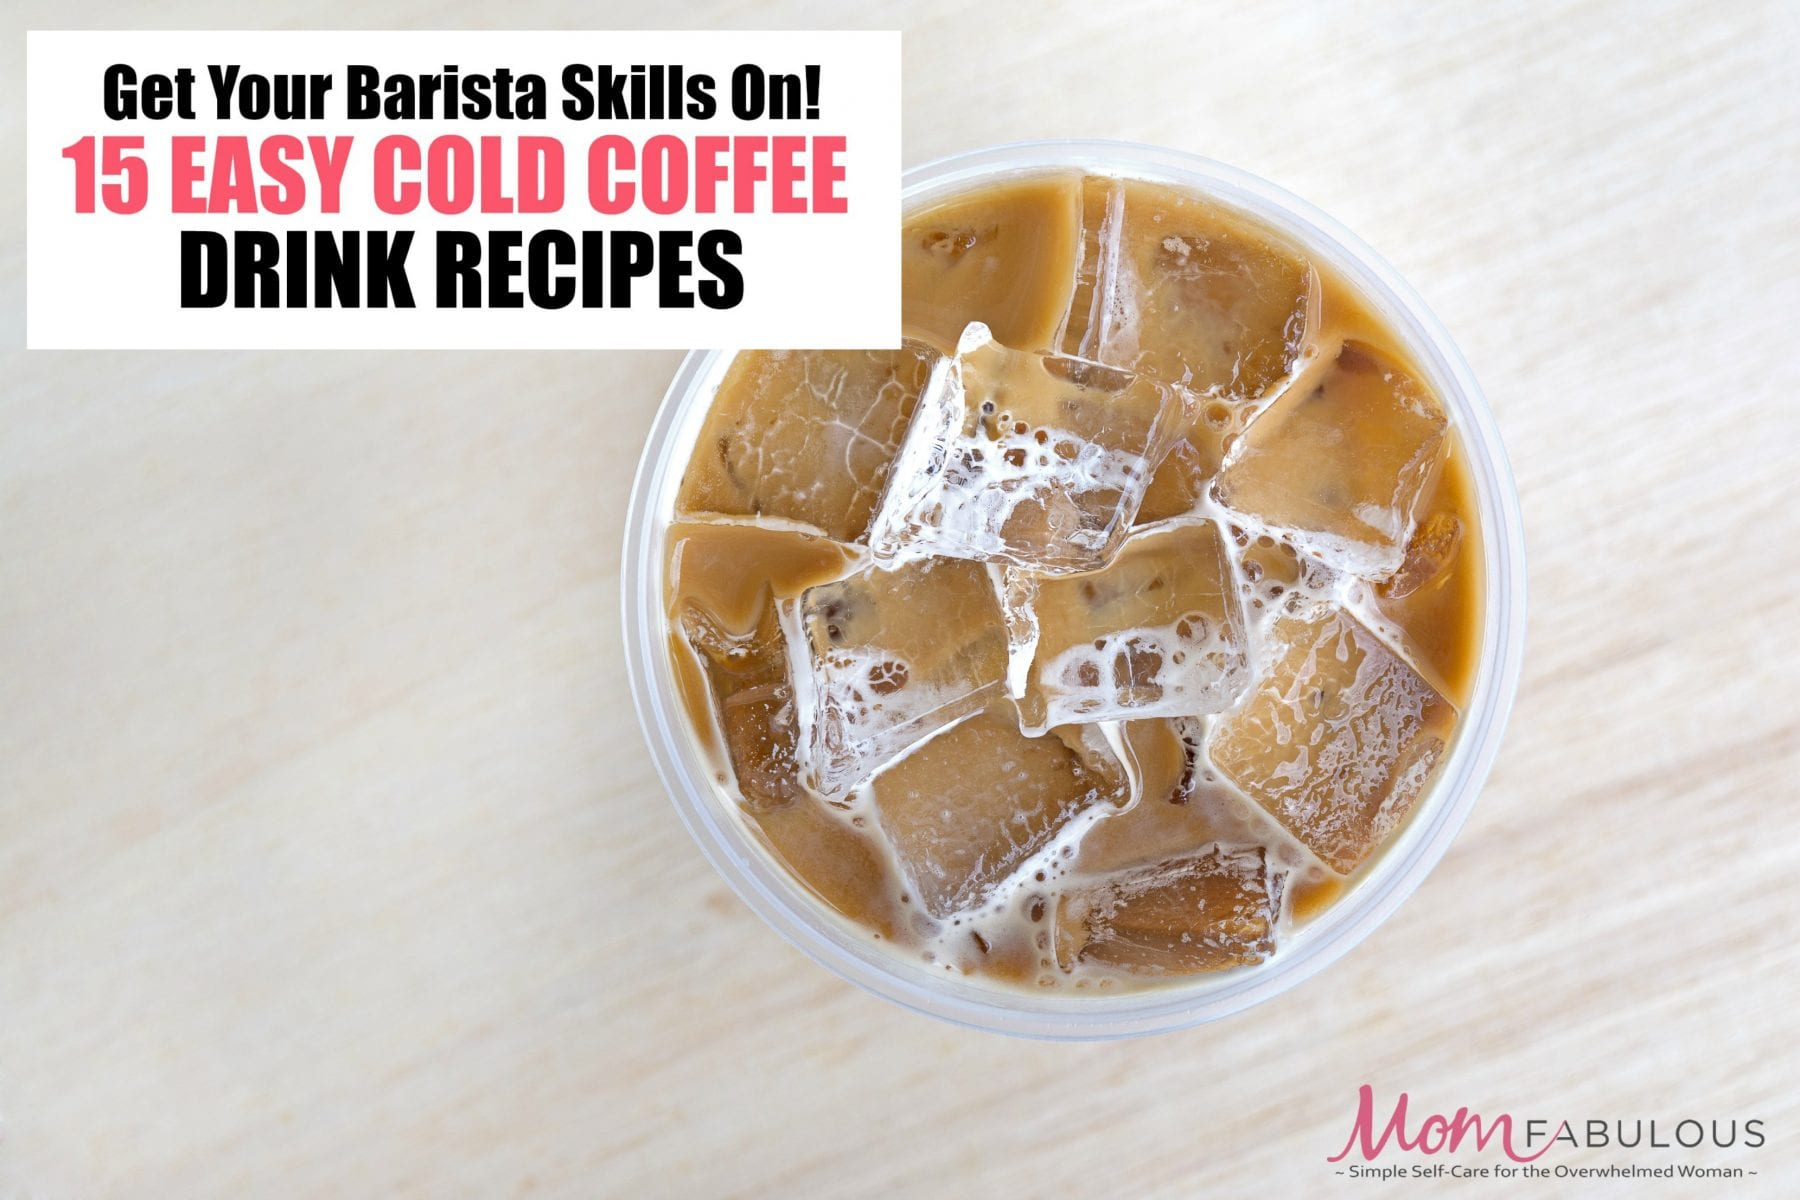 Get Your Barista Skills On With These 15 Easy Cold Coffee Drink Recipes